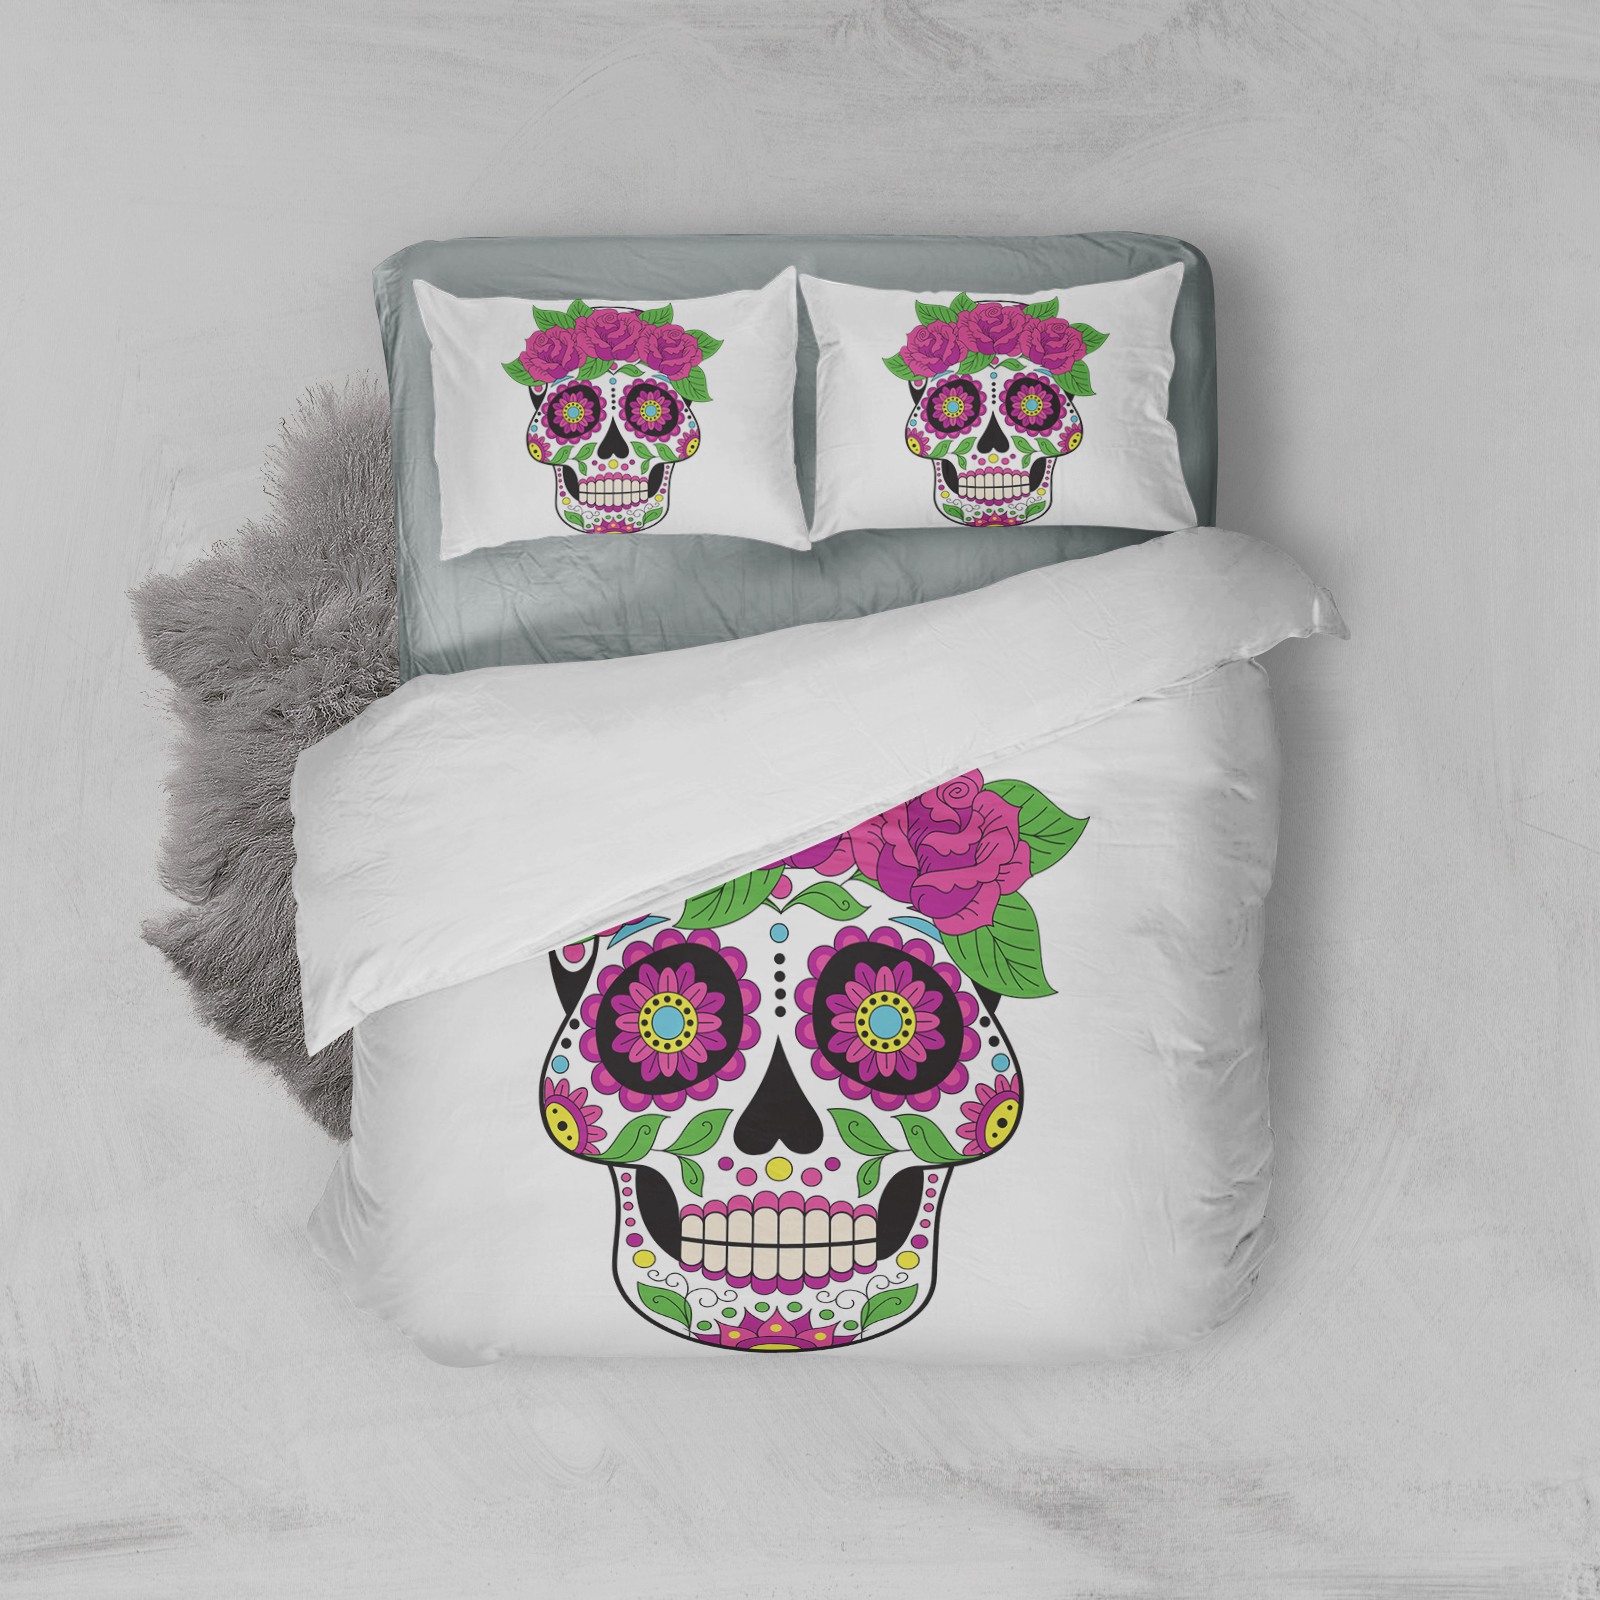 Flame Skull Bedding Set King 3D Printed Duvet Cover Blue Fire Bedclothes 3pcs Fashion Home Textiles for Boys in Bedding Sets from Home Garden